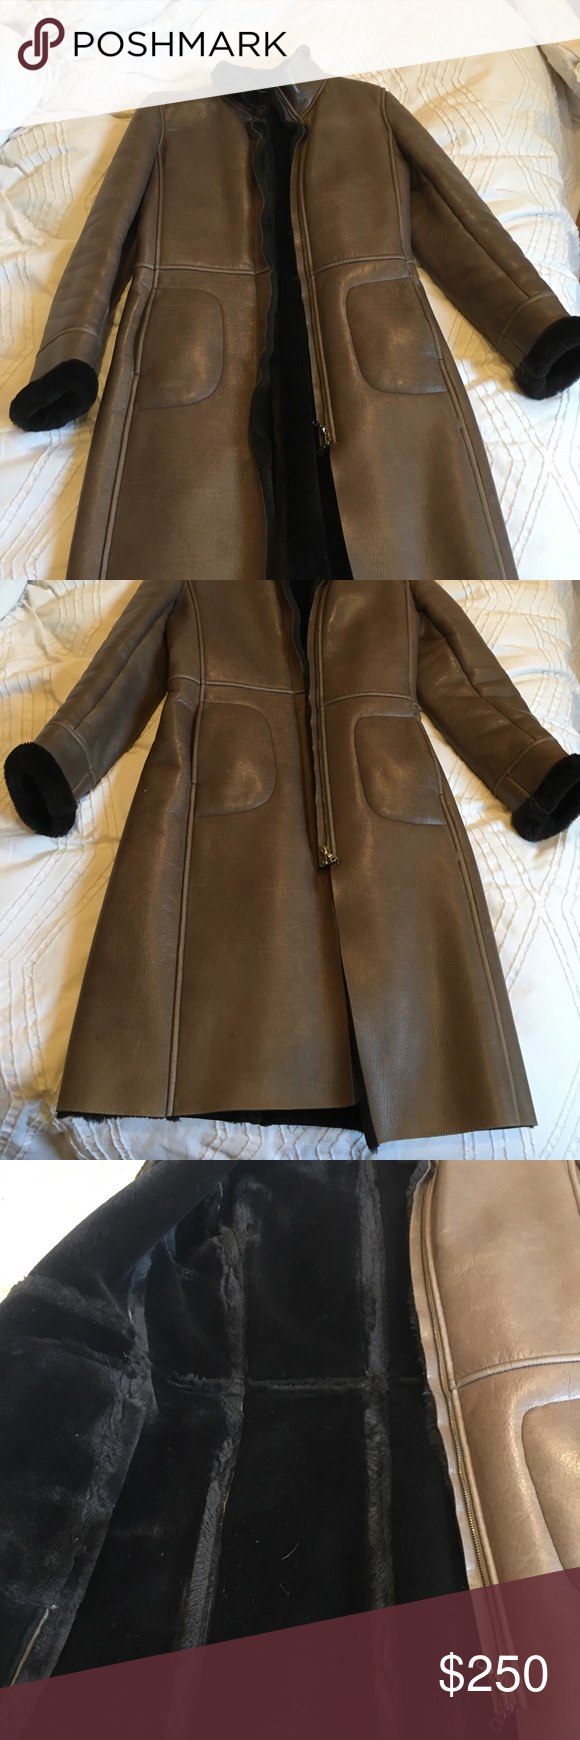 M0851 women's faux fur lined leather coat Quality soft and